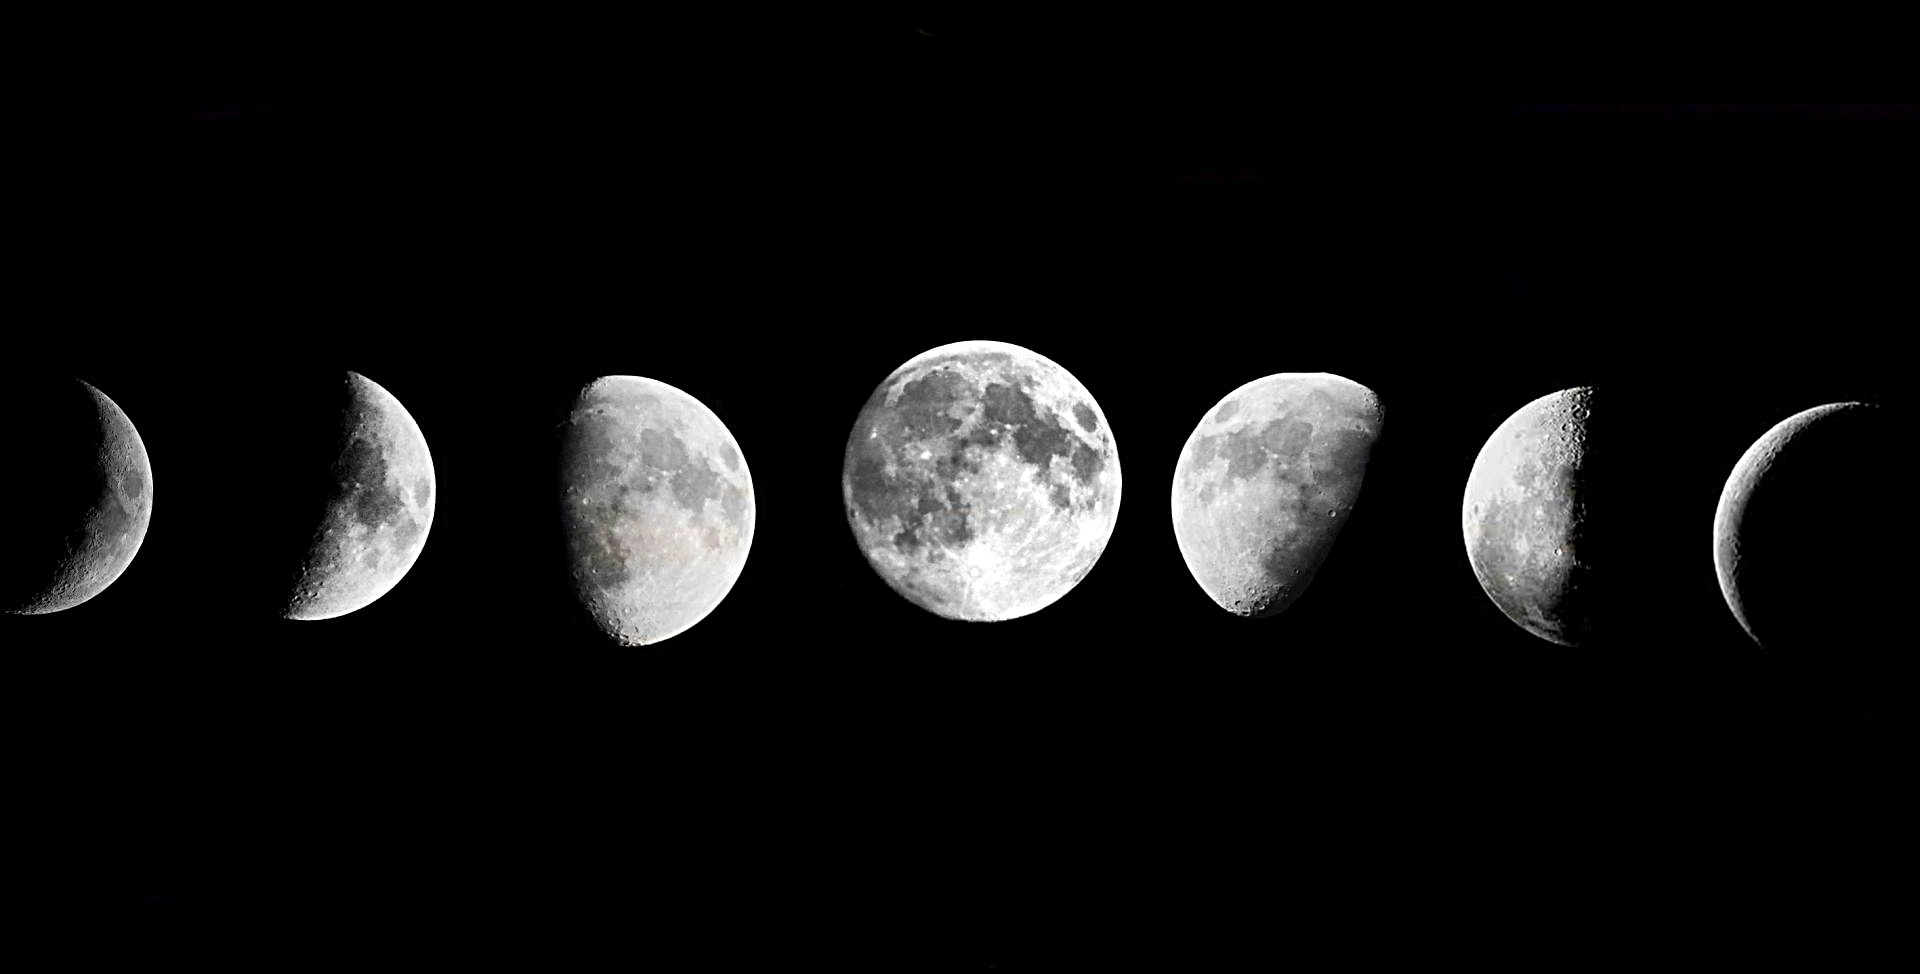 white or red moon cycle - photo #5